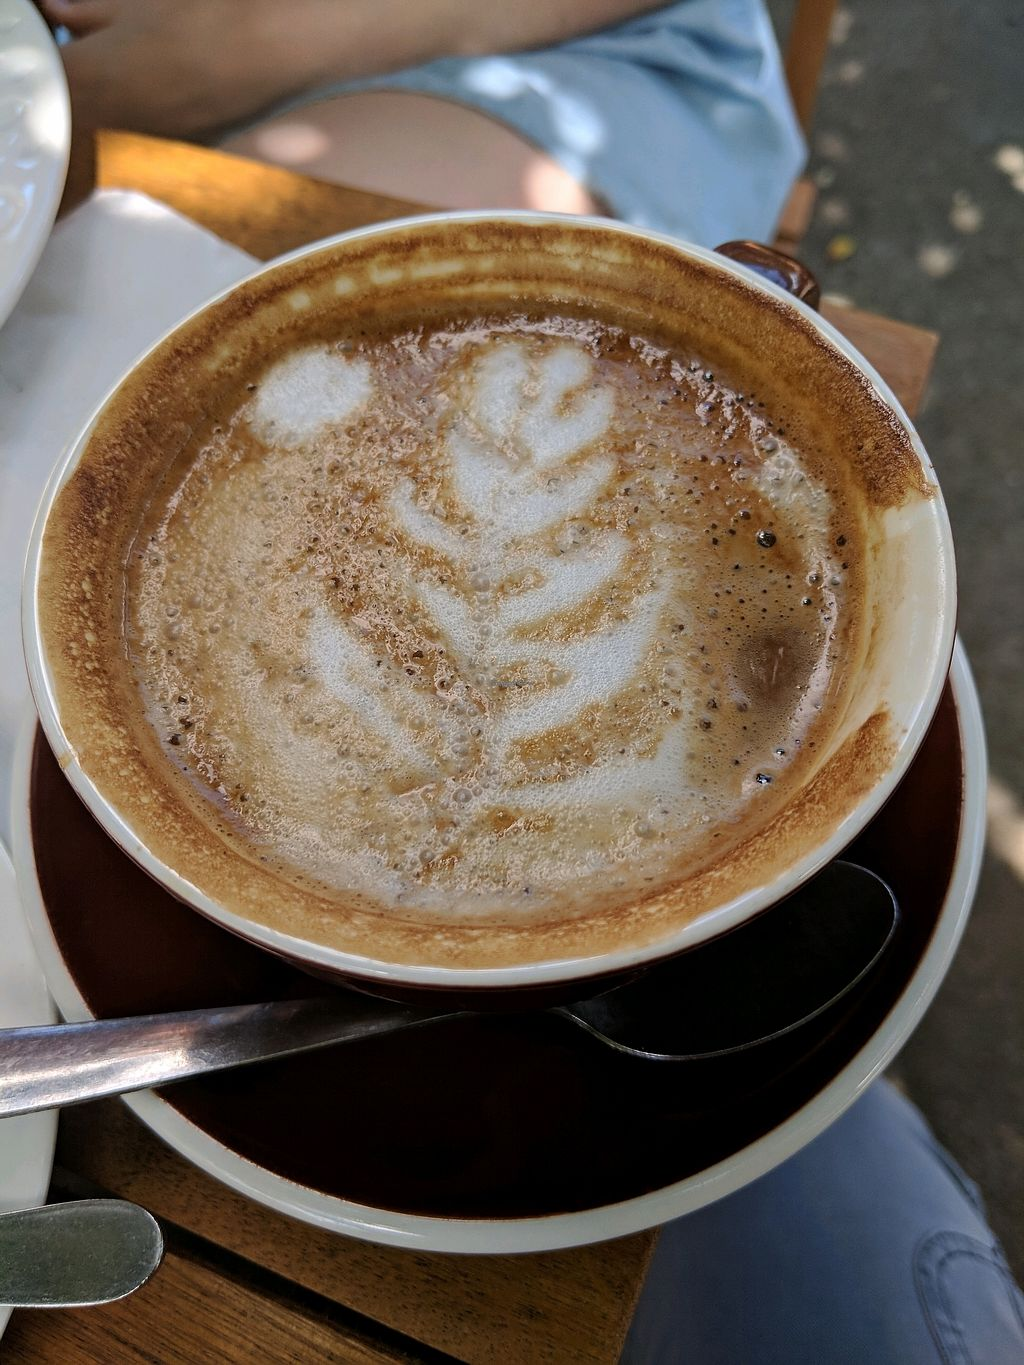 """Photo of Brown Sugar Cafe  by <a href=""""/members/profile/jesse558"""">jesse558</a> <br/>Almond latte <br/> February 22, 2018  - <a href='/contact/abuse/image/84363/362306'>Report</a>"""